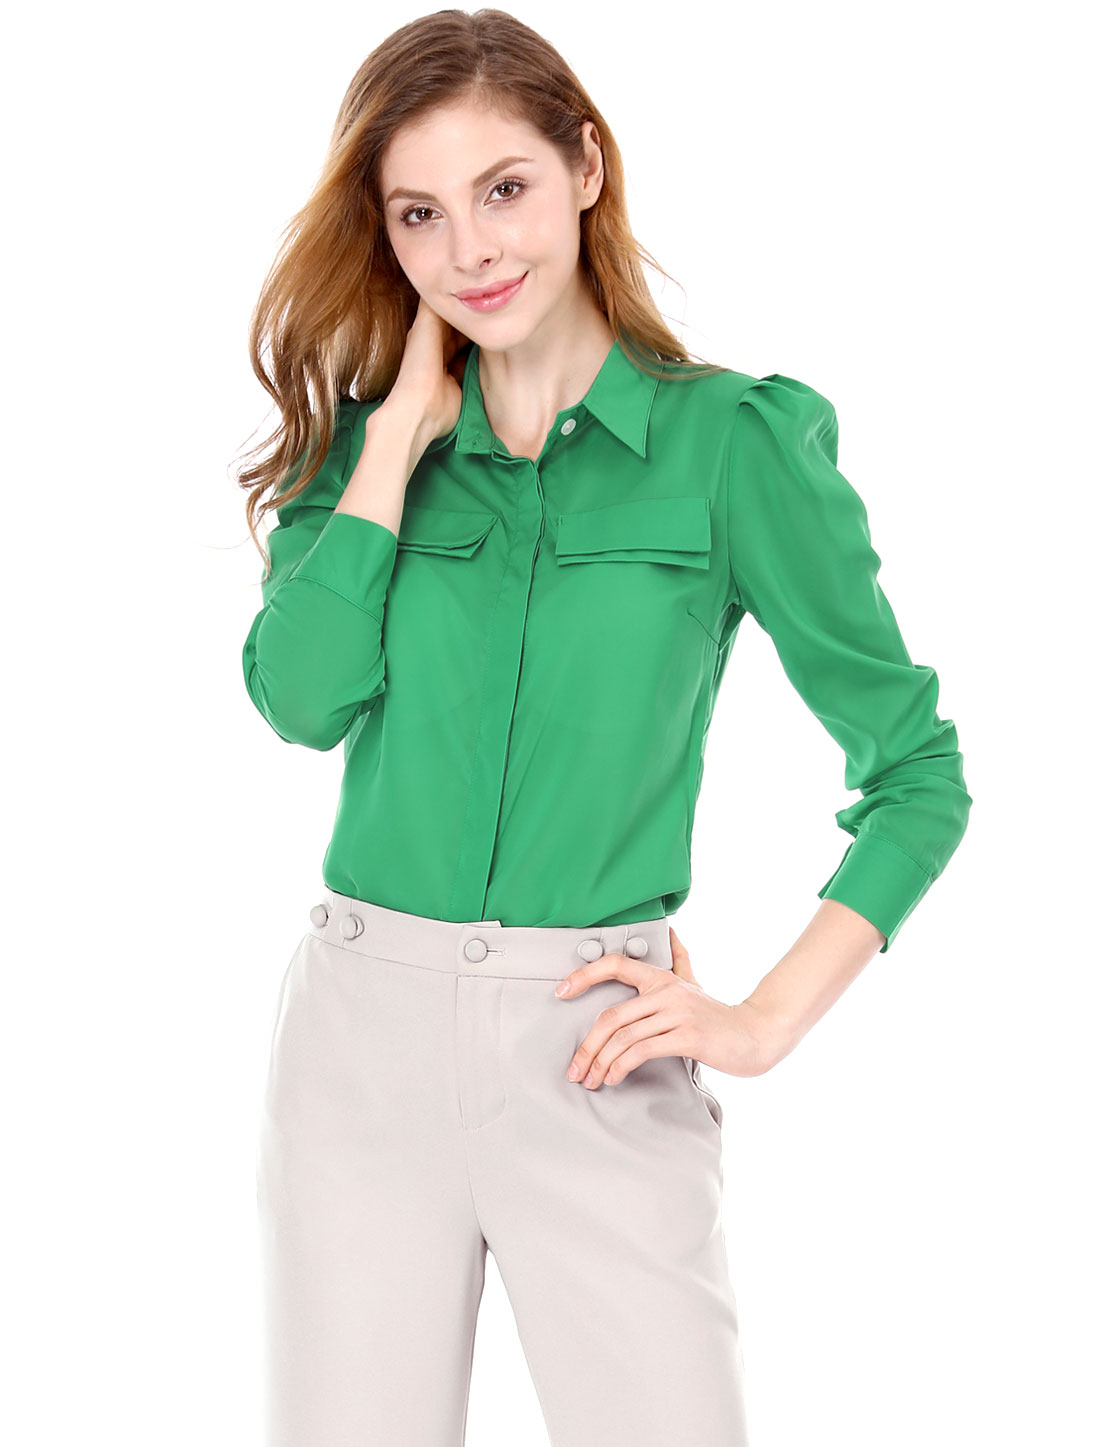 Women Stylish Long Puff Sleeve Design Green Button Down Shirt M